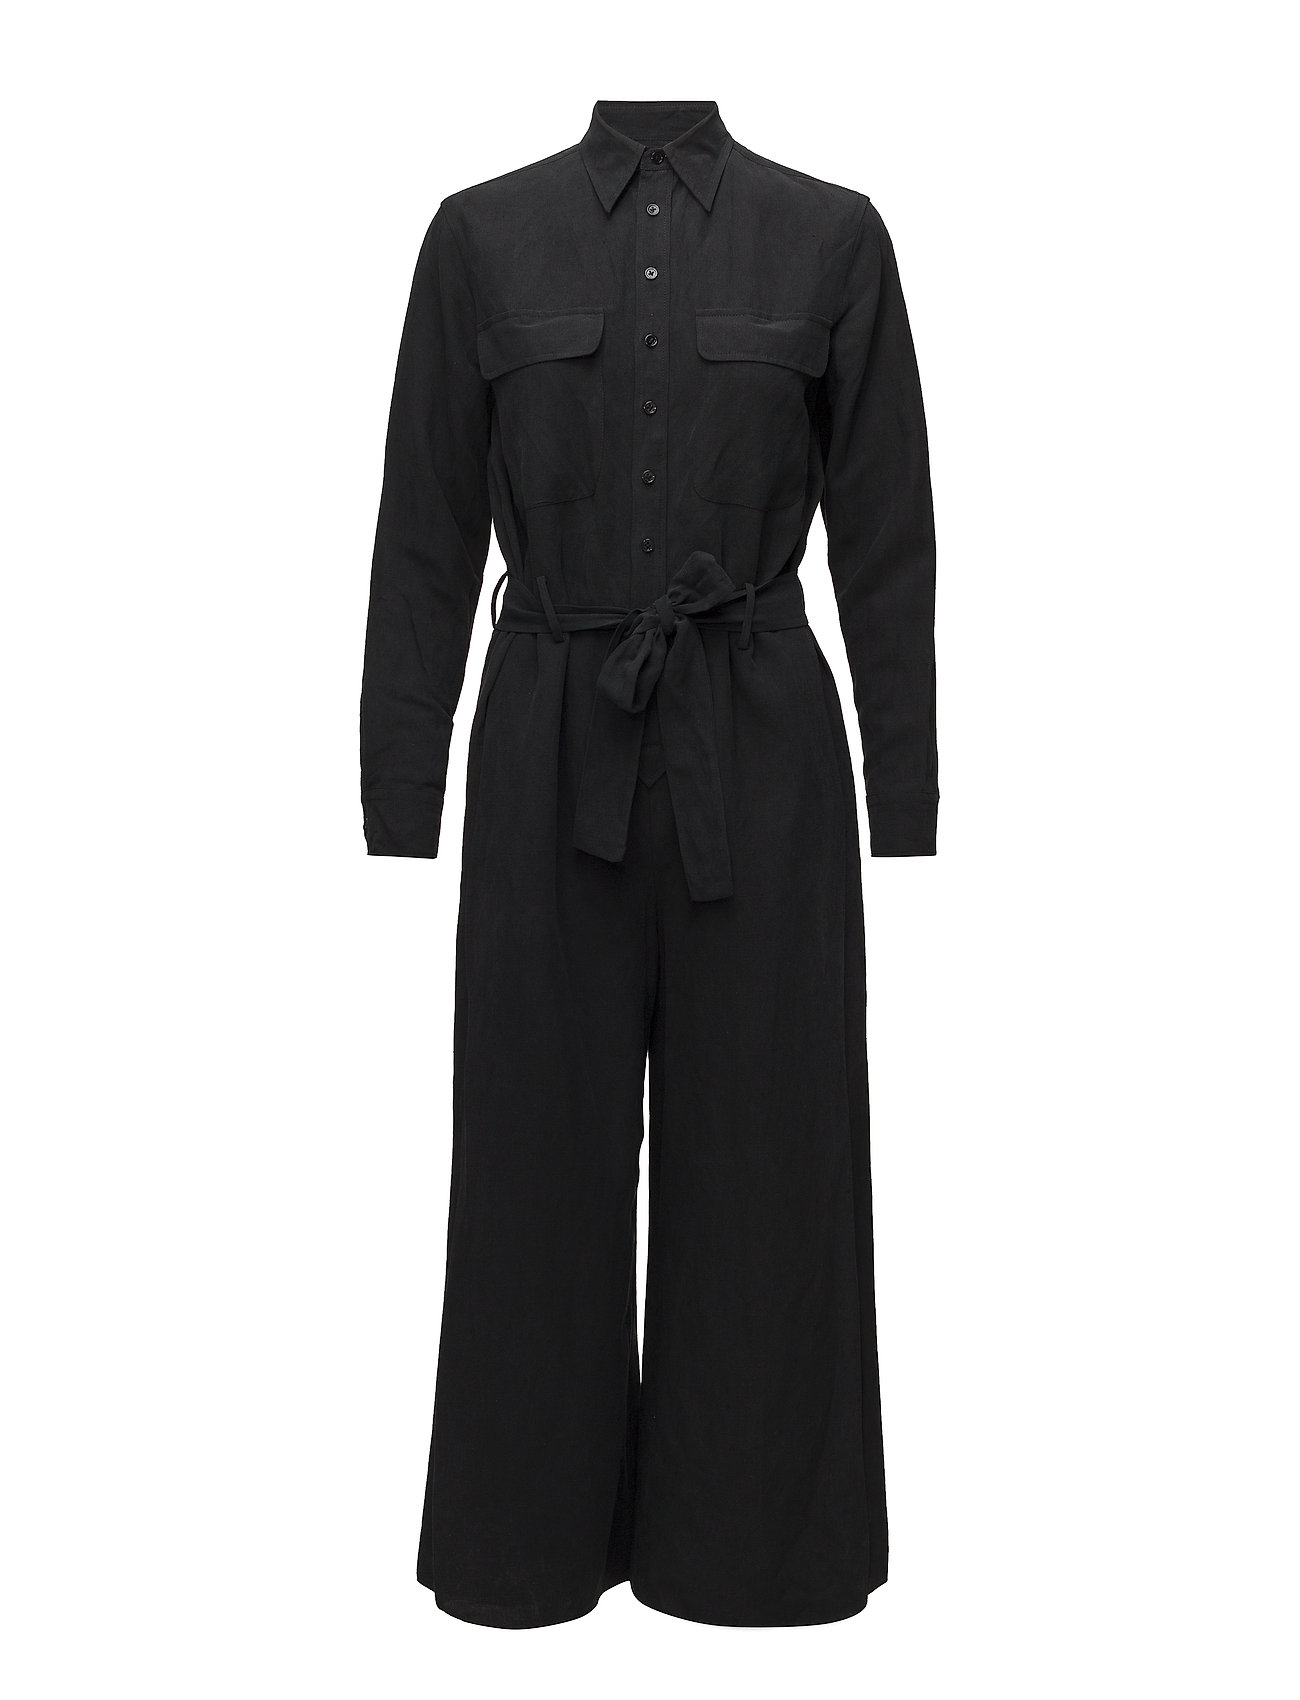 Dna Jumpsuit (Polo Black) (279.30 €) - Polo Ralph Lauren - Haalarit ... dcb573cb9e